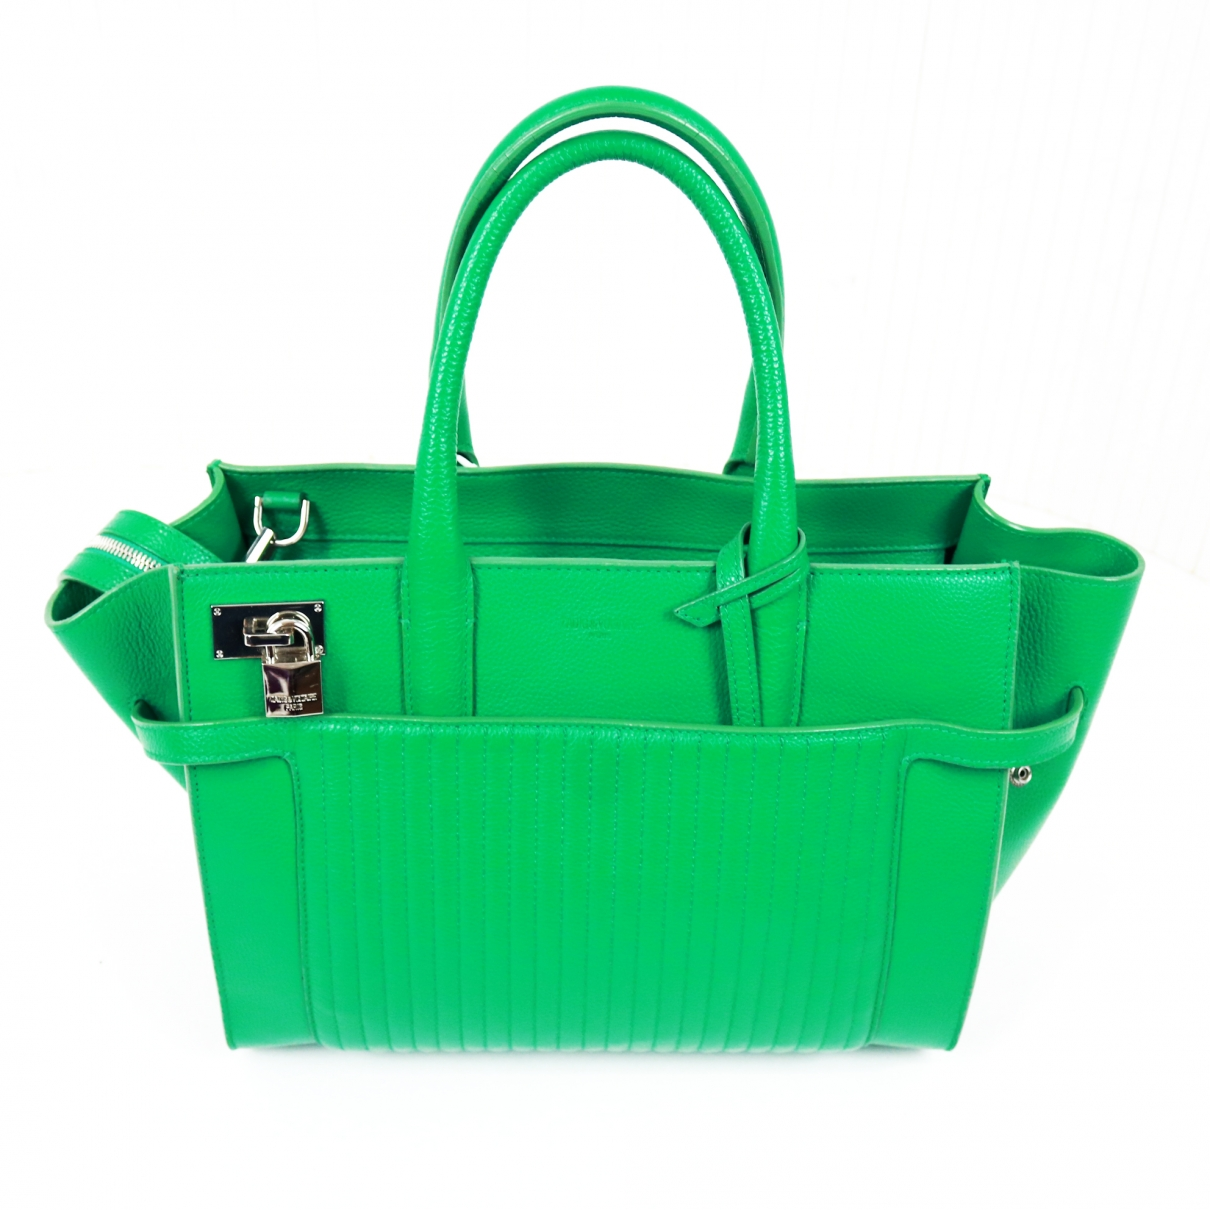 Zadig & Voltaire Candide Green Leather handbag for Women \N